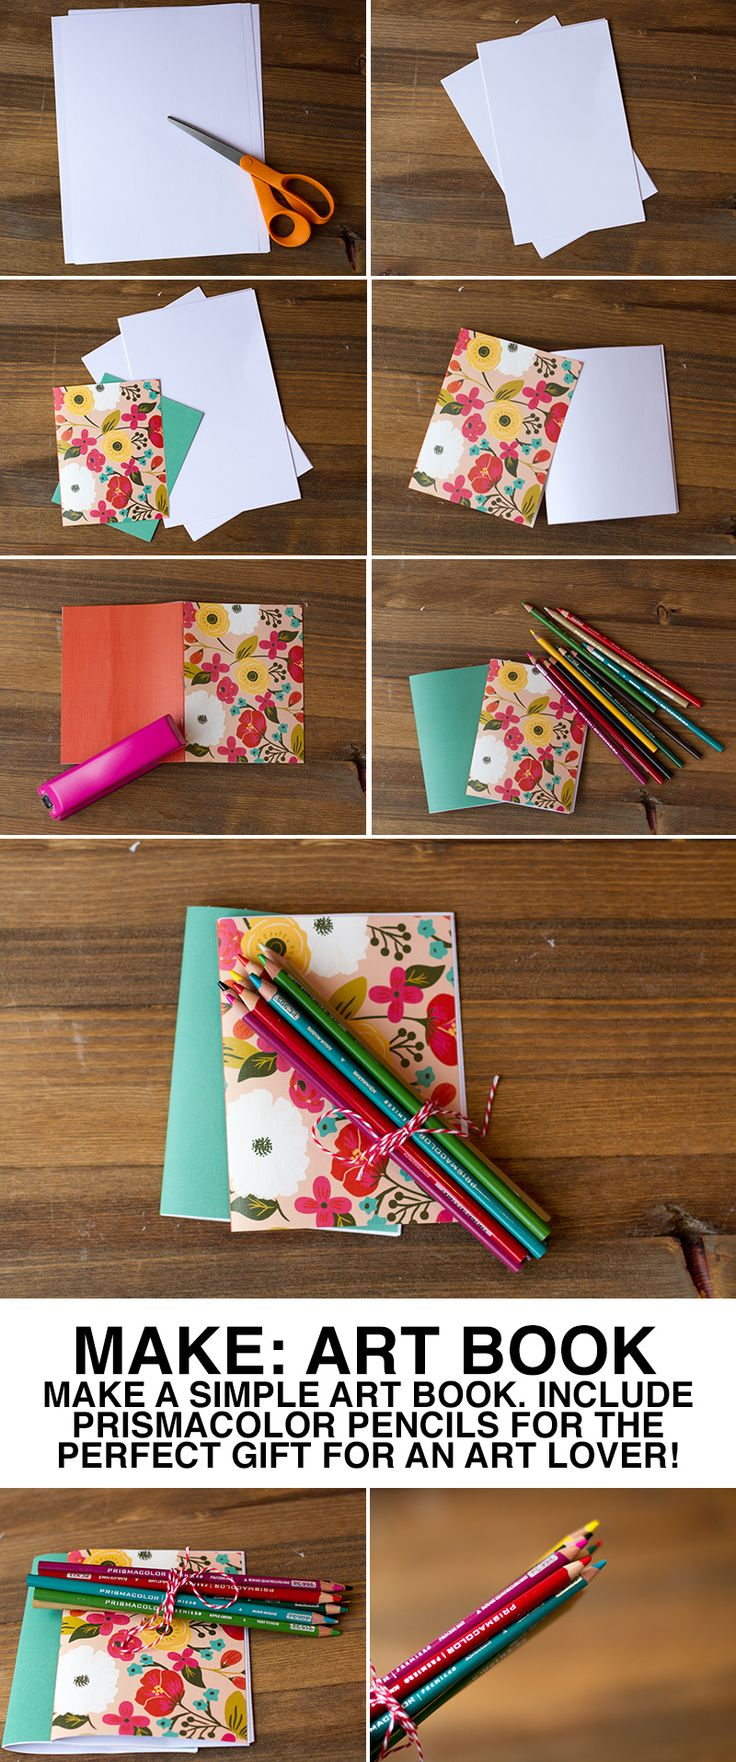 17 Best images about DIY Paper Crafts and Paper Ideas on